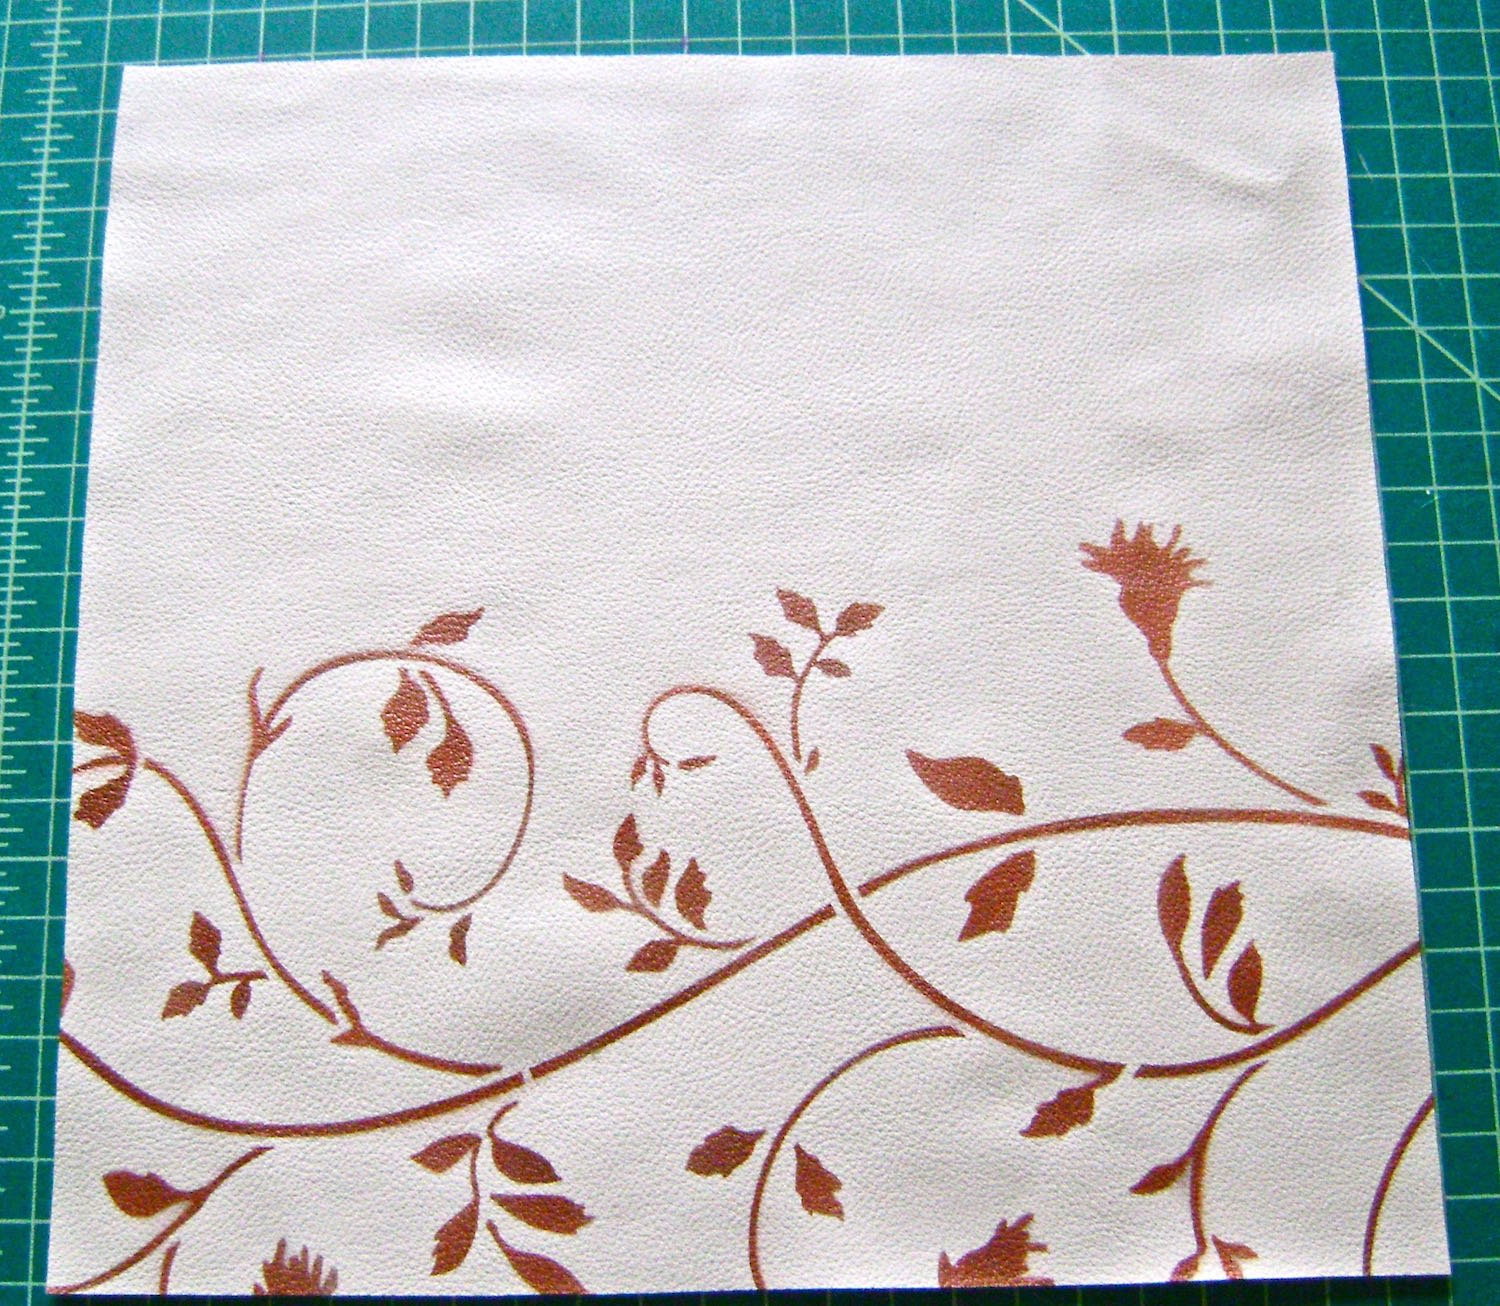 "step 3 - Apply adhesive to the back side of the stencil.  Apply it sticky side down to the front vinyl piece so that the floral design begins about 4.75"" from the top of the piece."